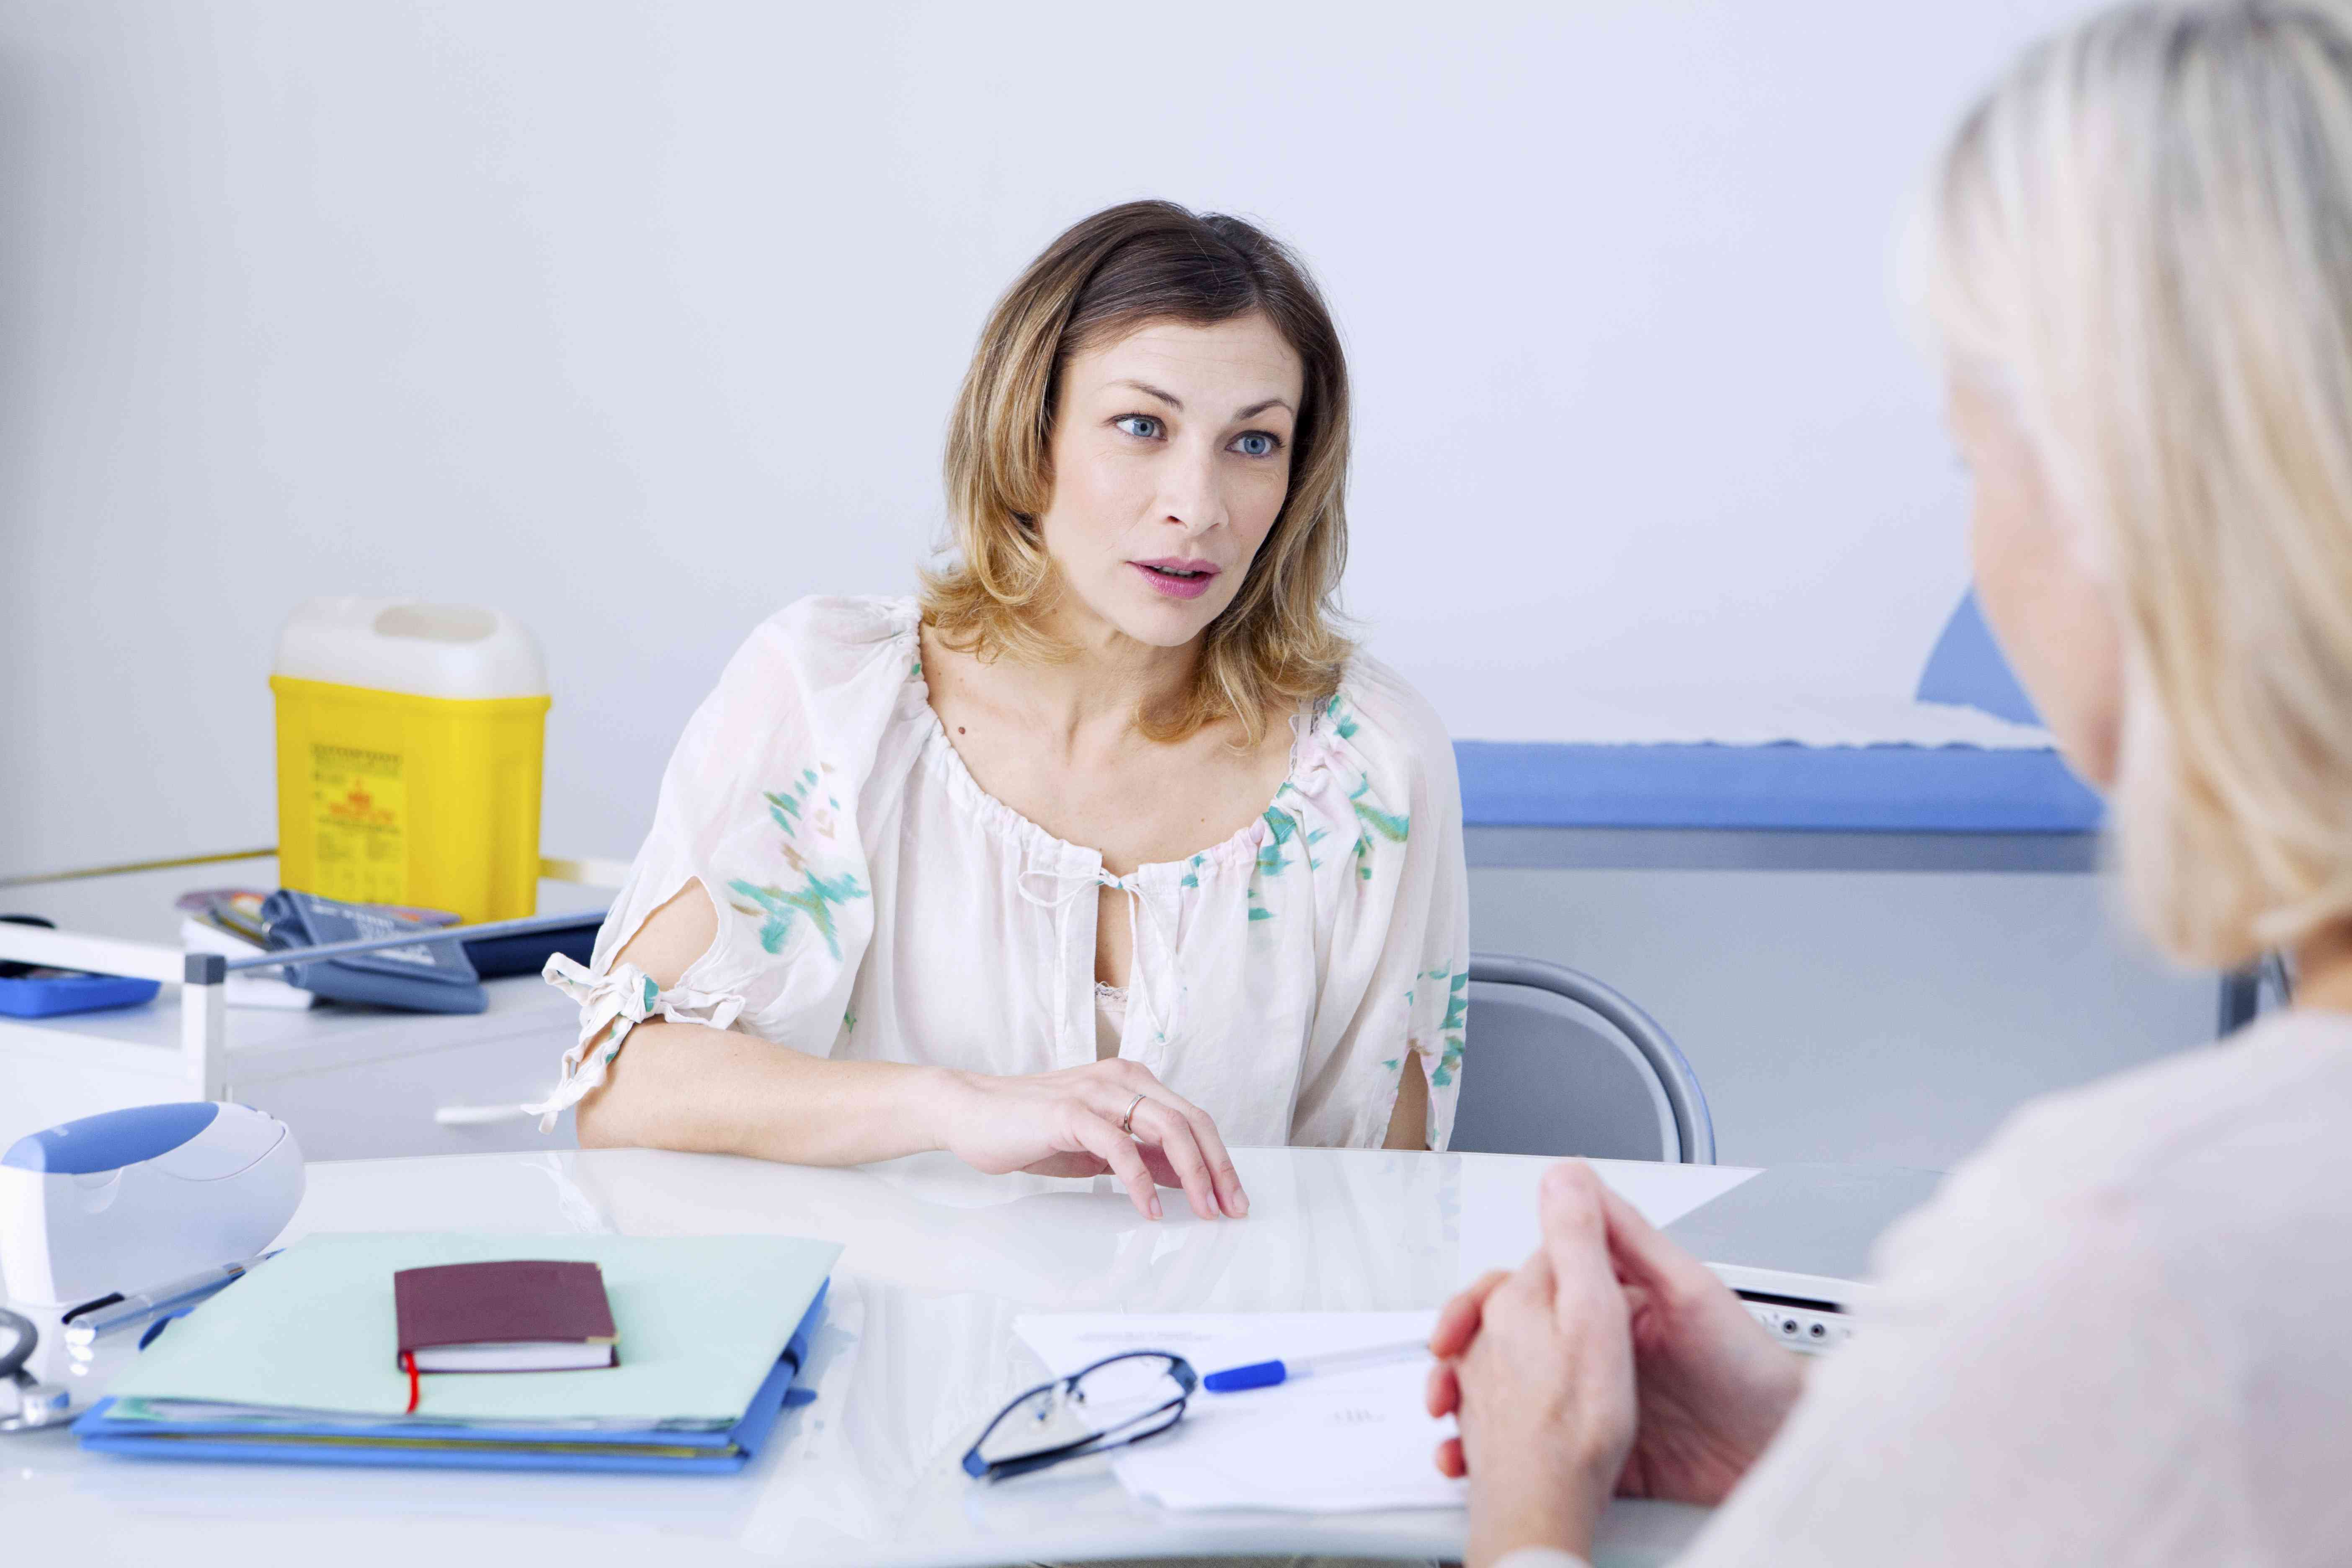 Woman consulting doctor for menopause symptoms